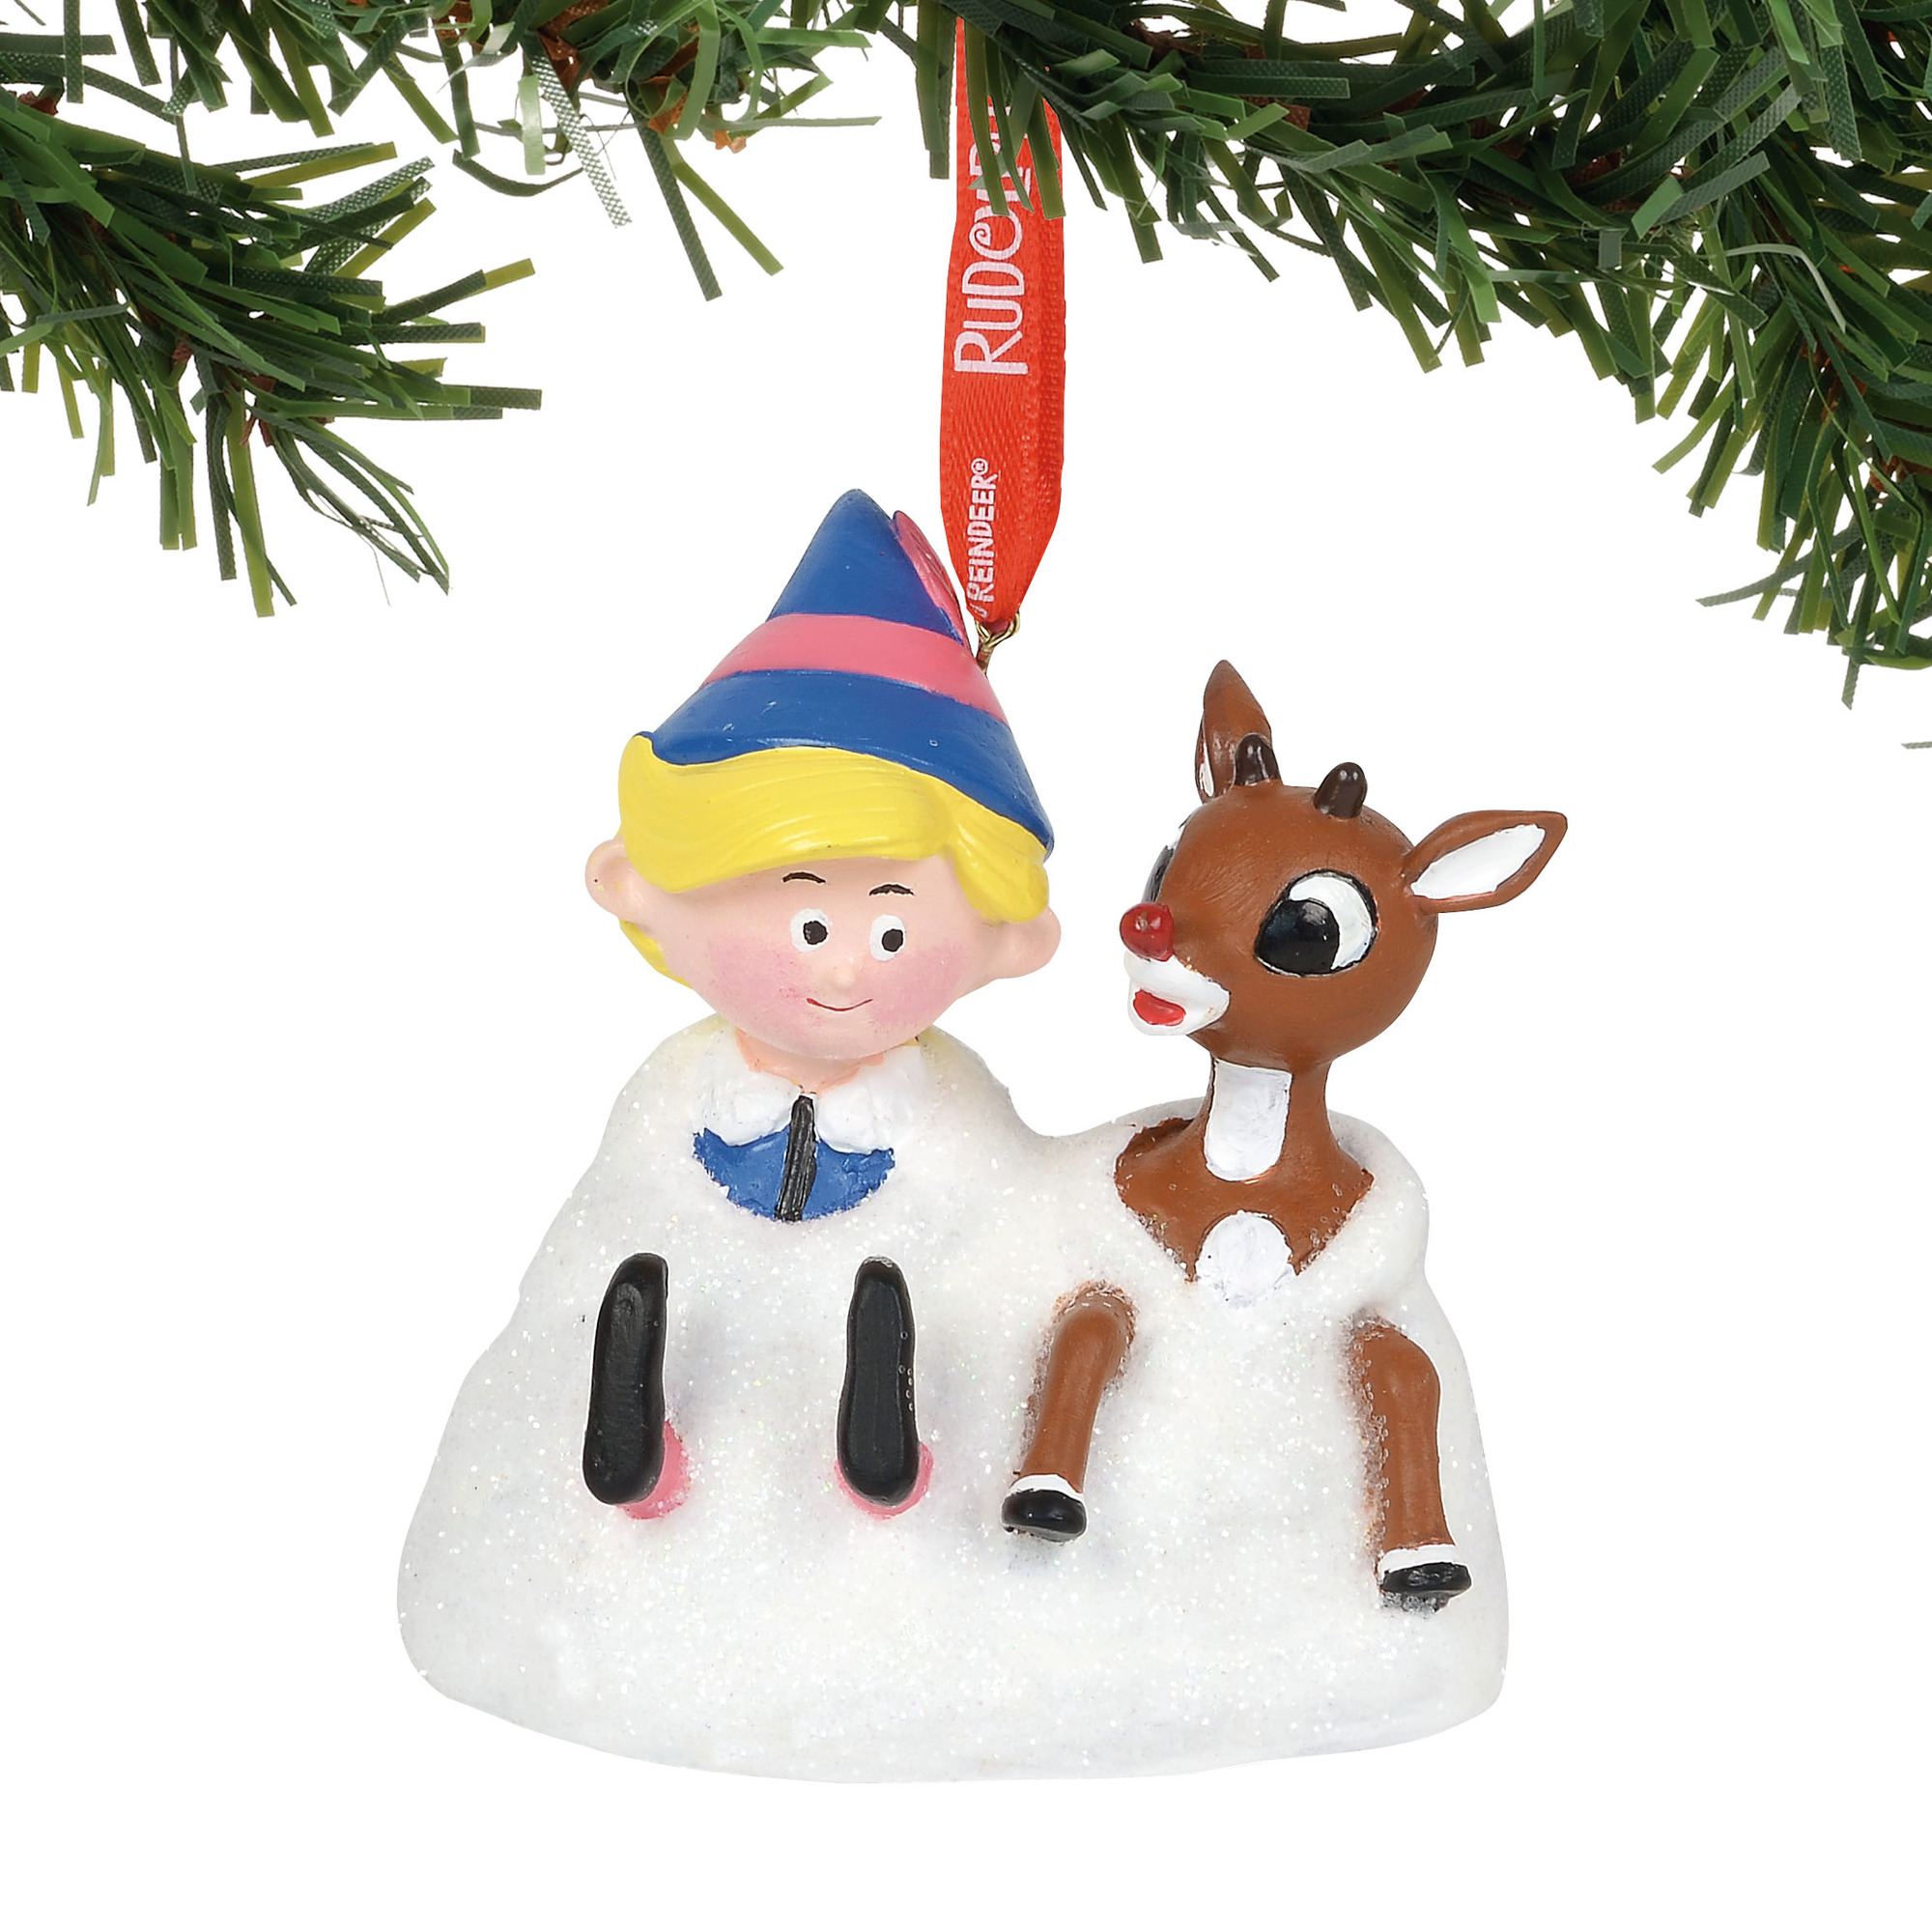 Department 56 Ornament - Rudolph - Musical Rudy and Elf